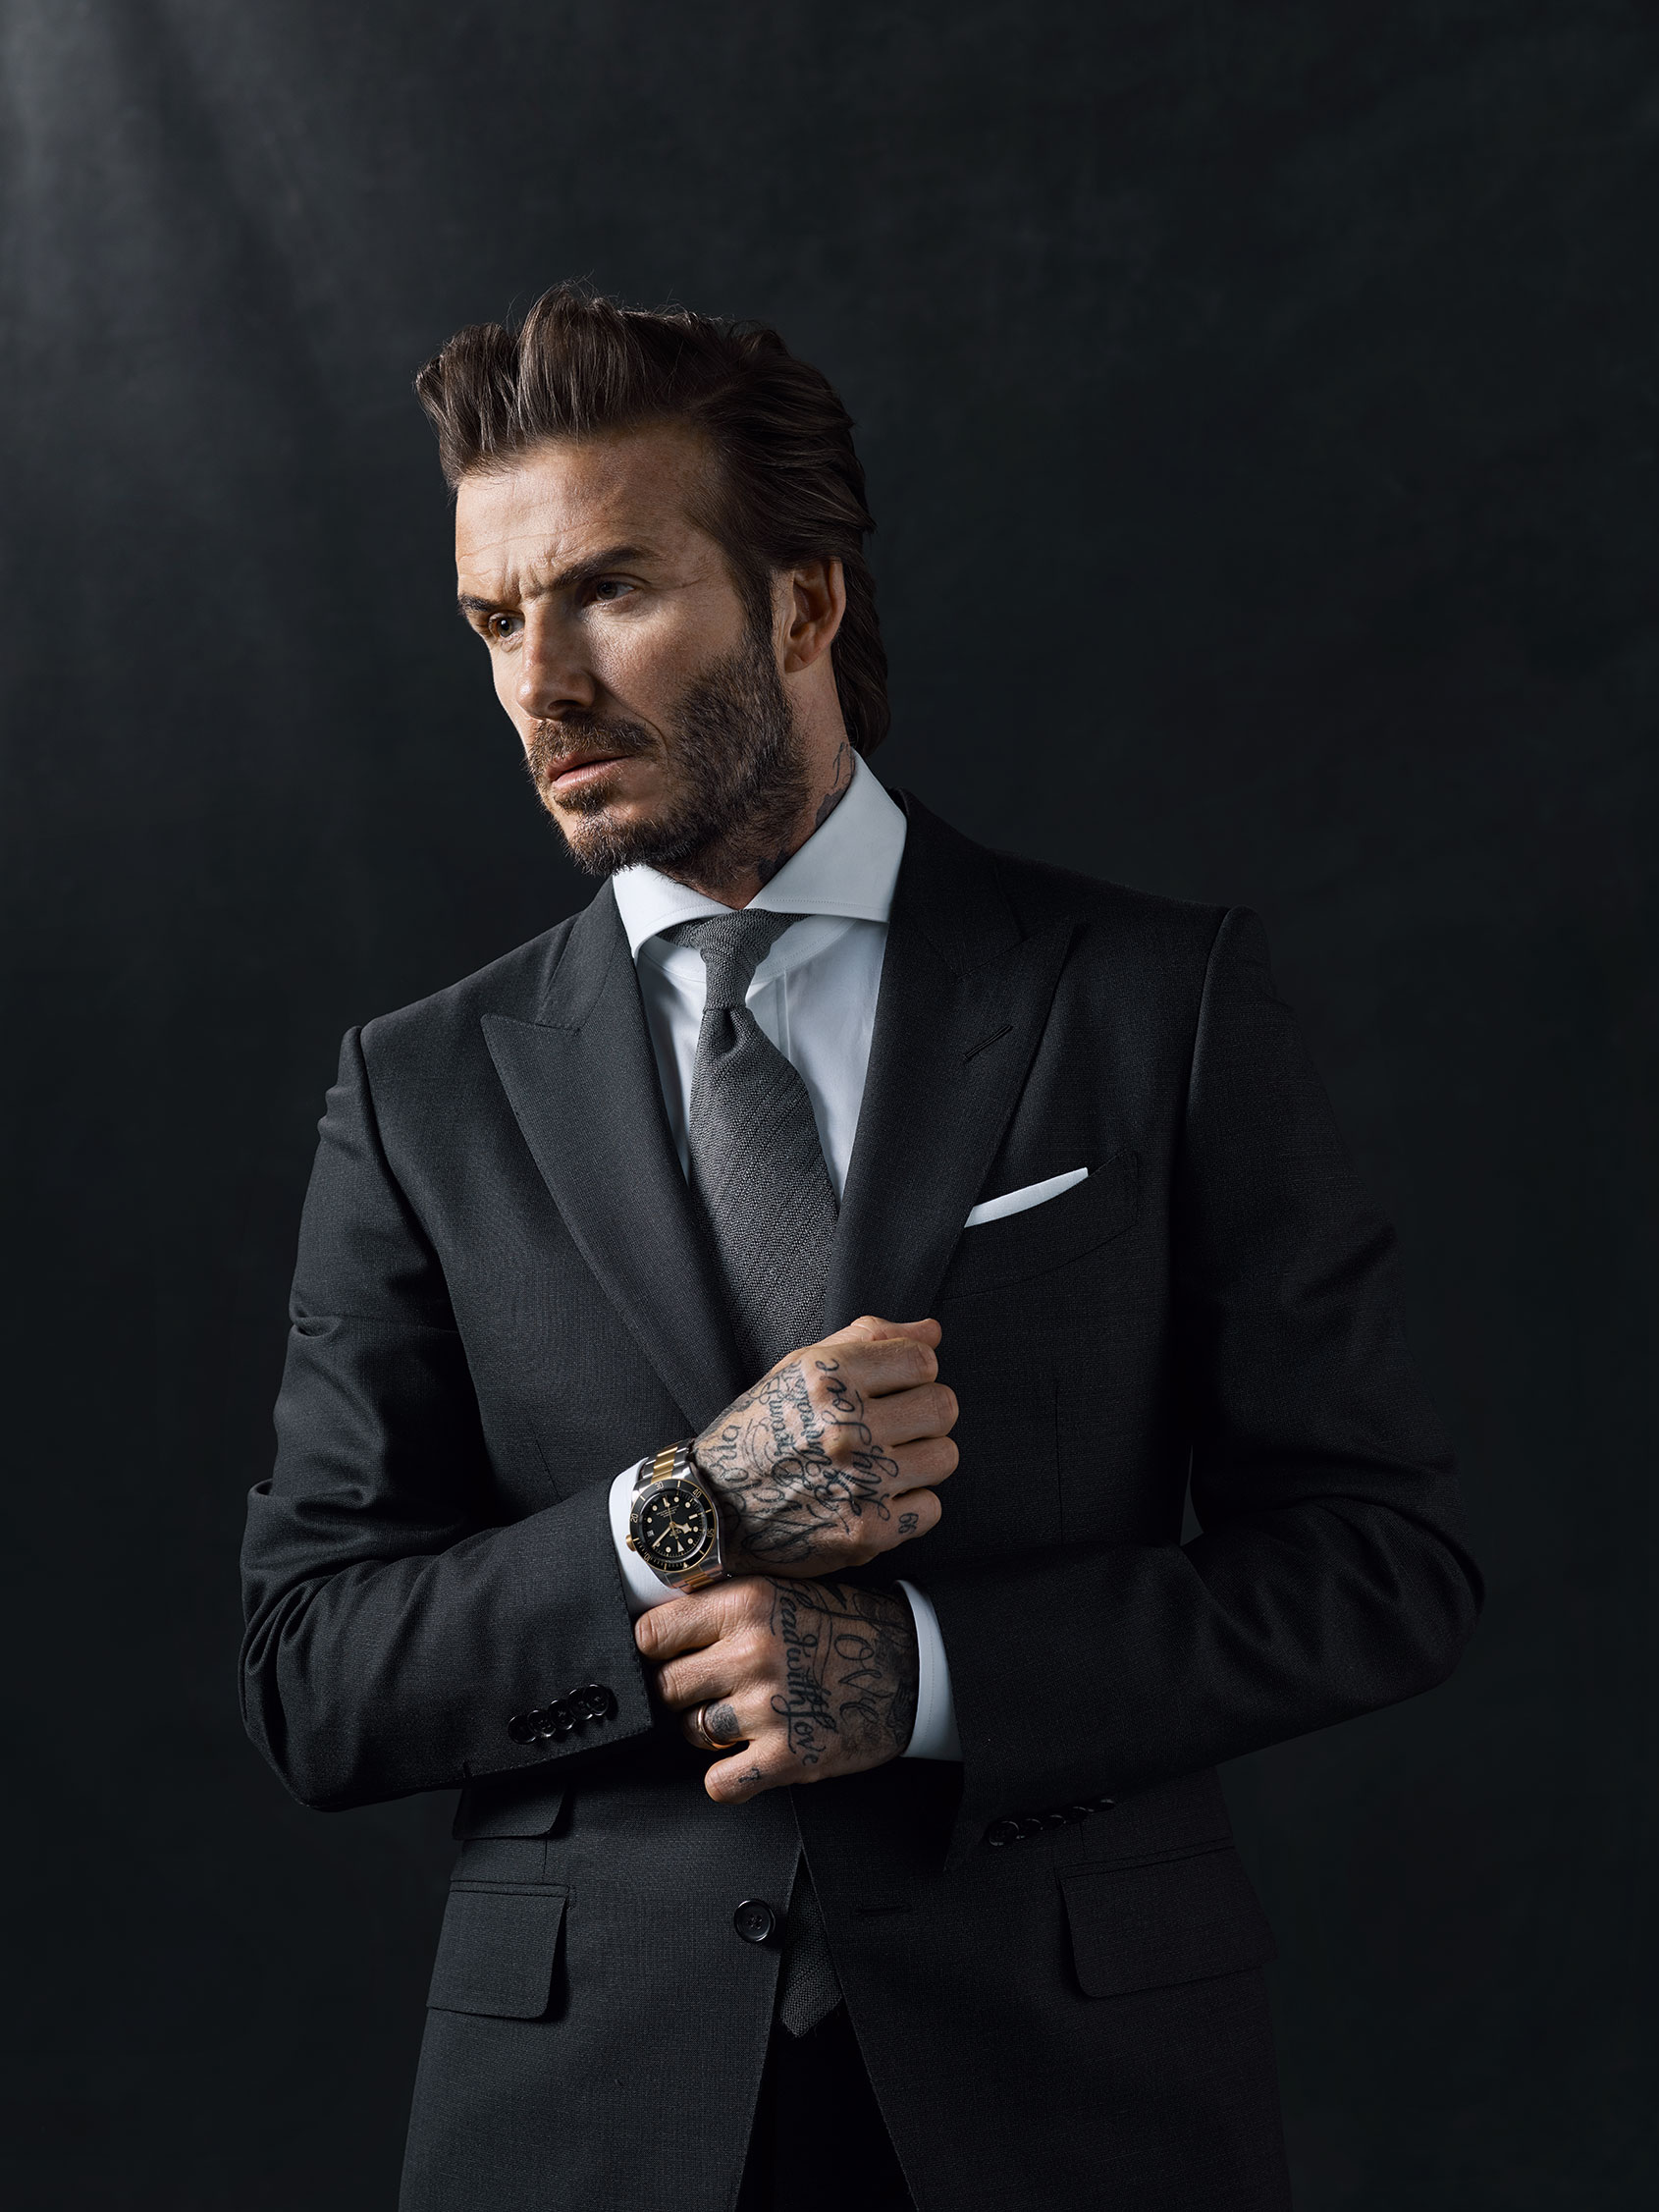 News Tudor Announces David Beckham As New Brand Ambassador Time And Tide Watches